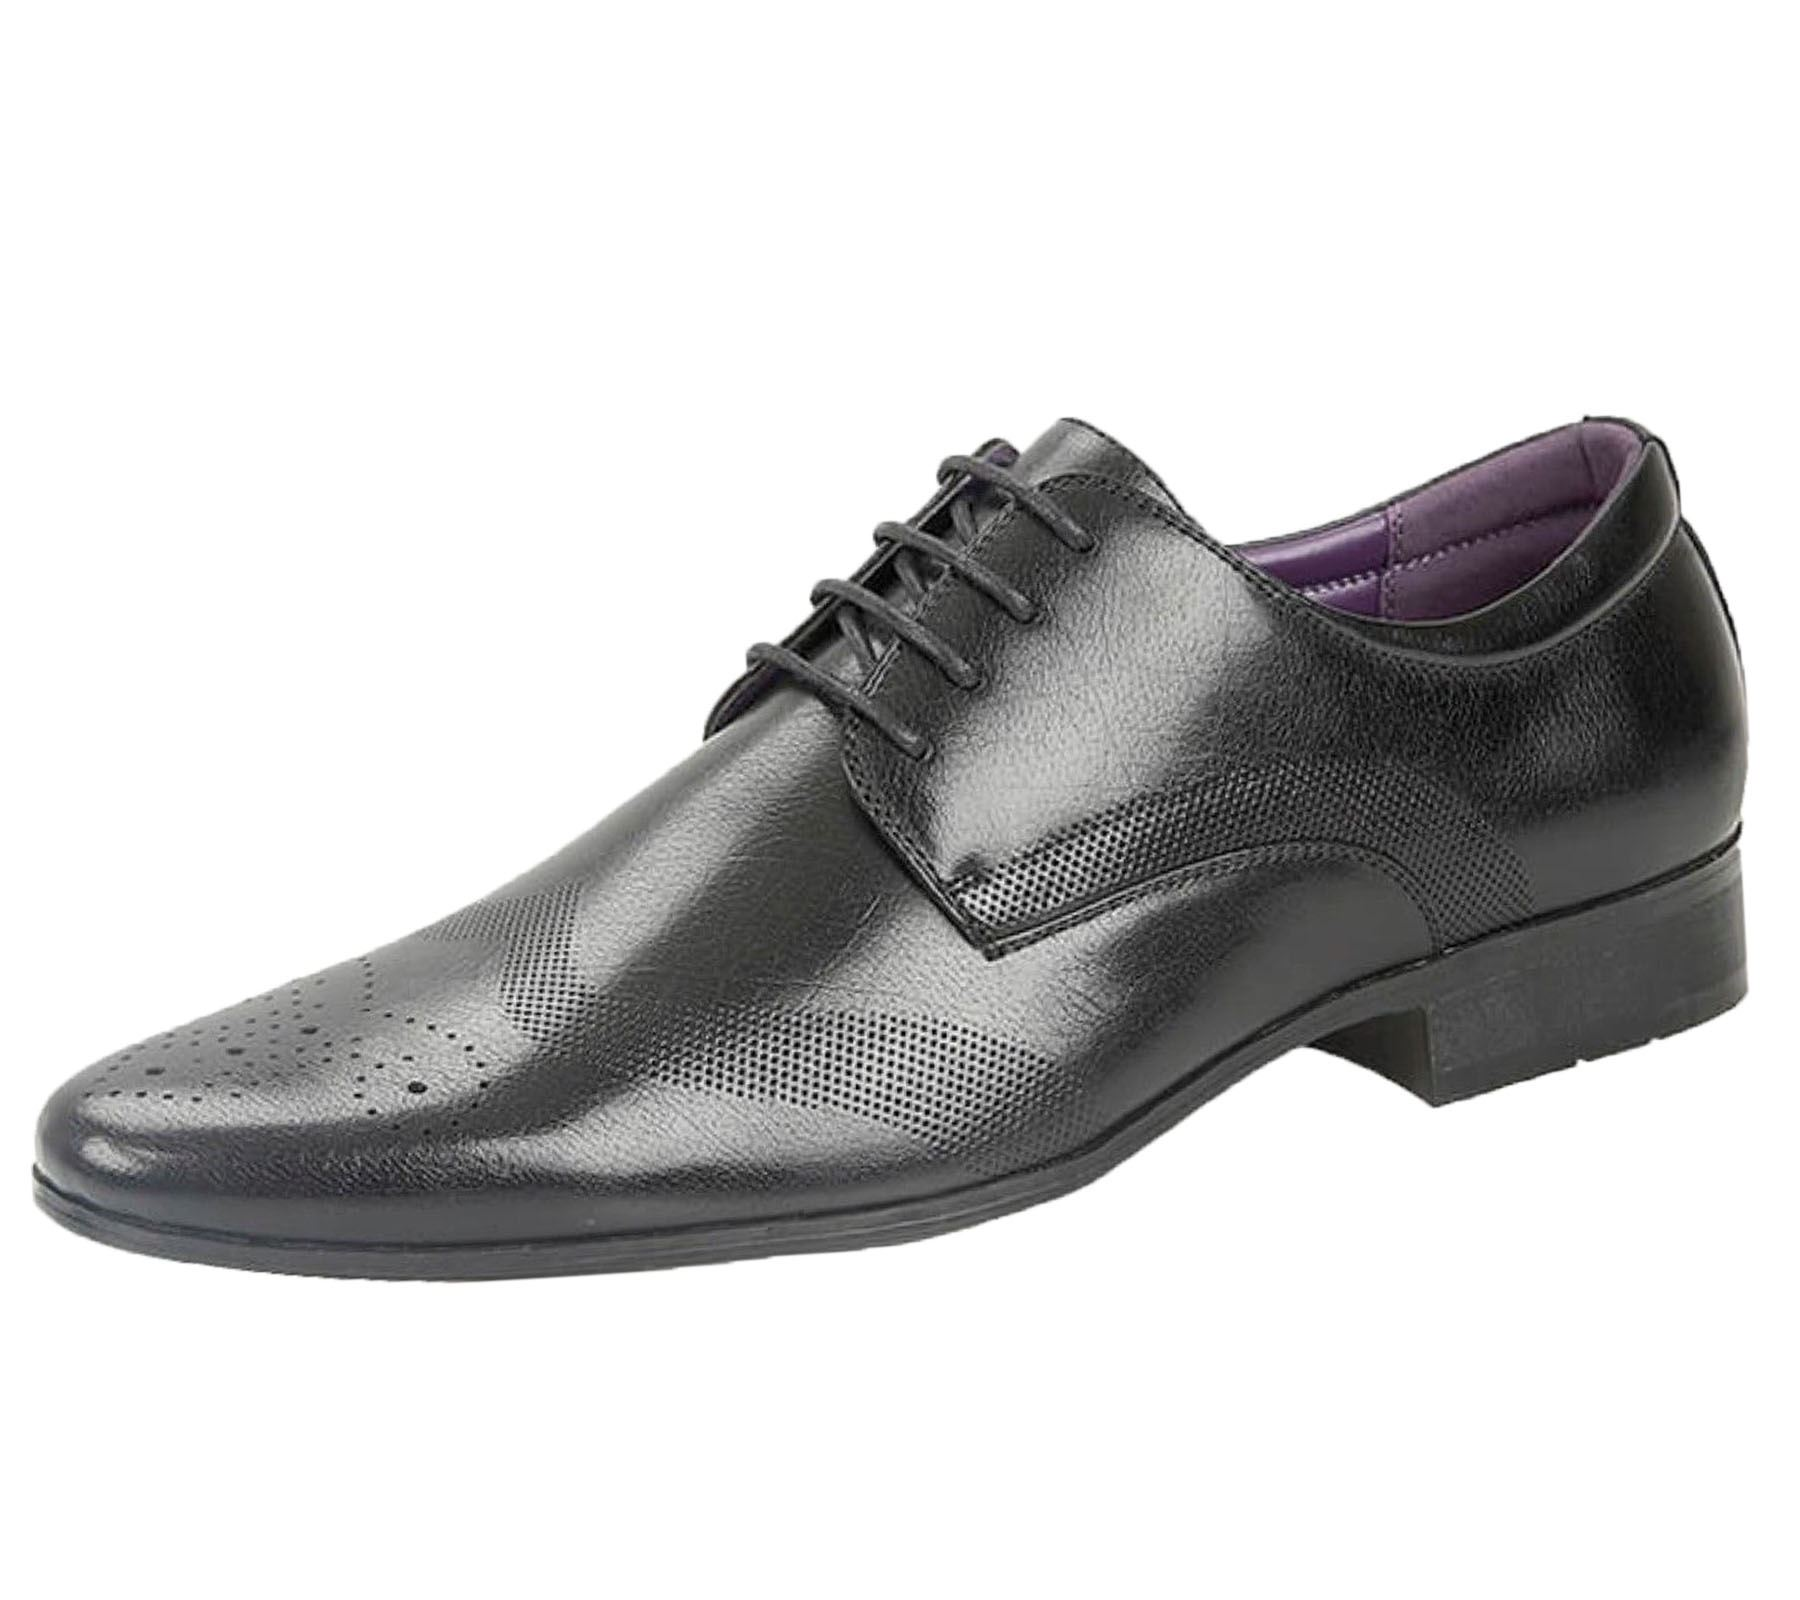 Mens-Brogues-Shoes-Office-Wedding-Formal-Smart-Dress-Shoes-New-Size miniatura 11